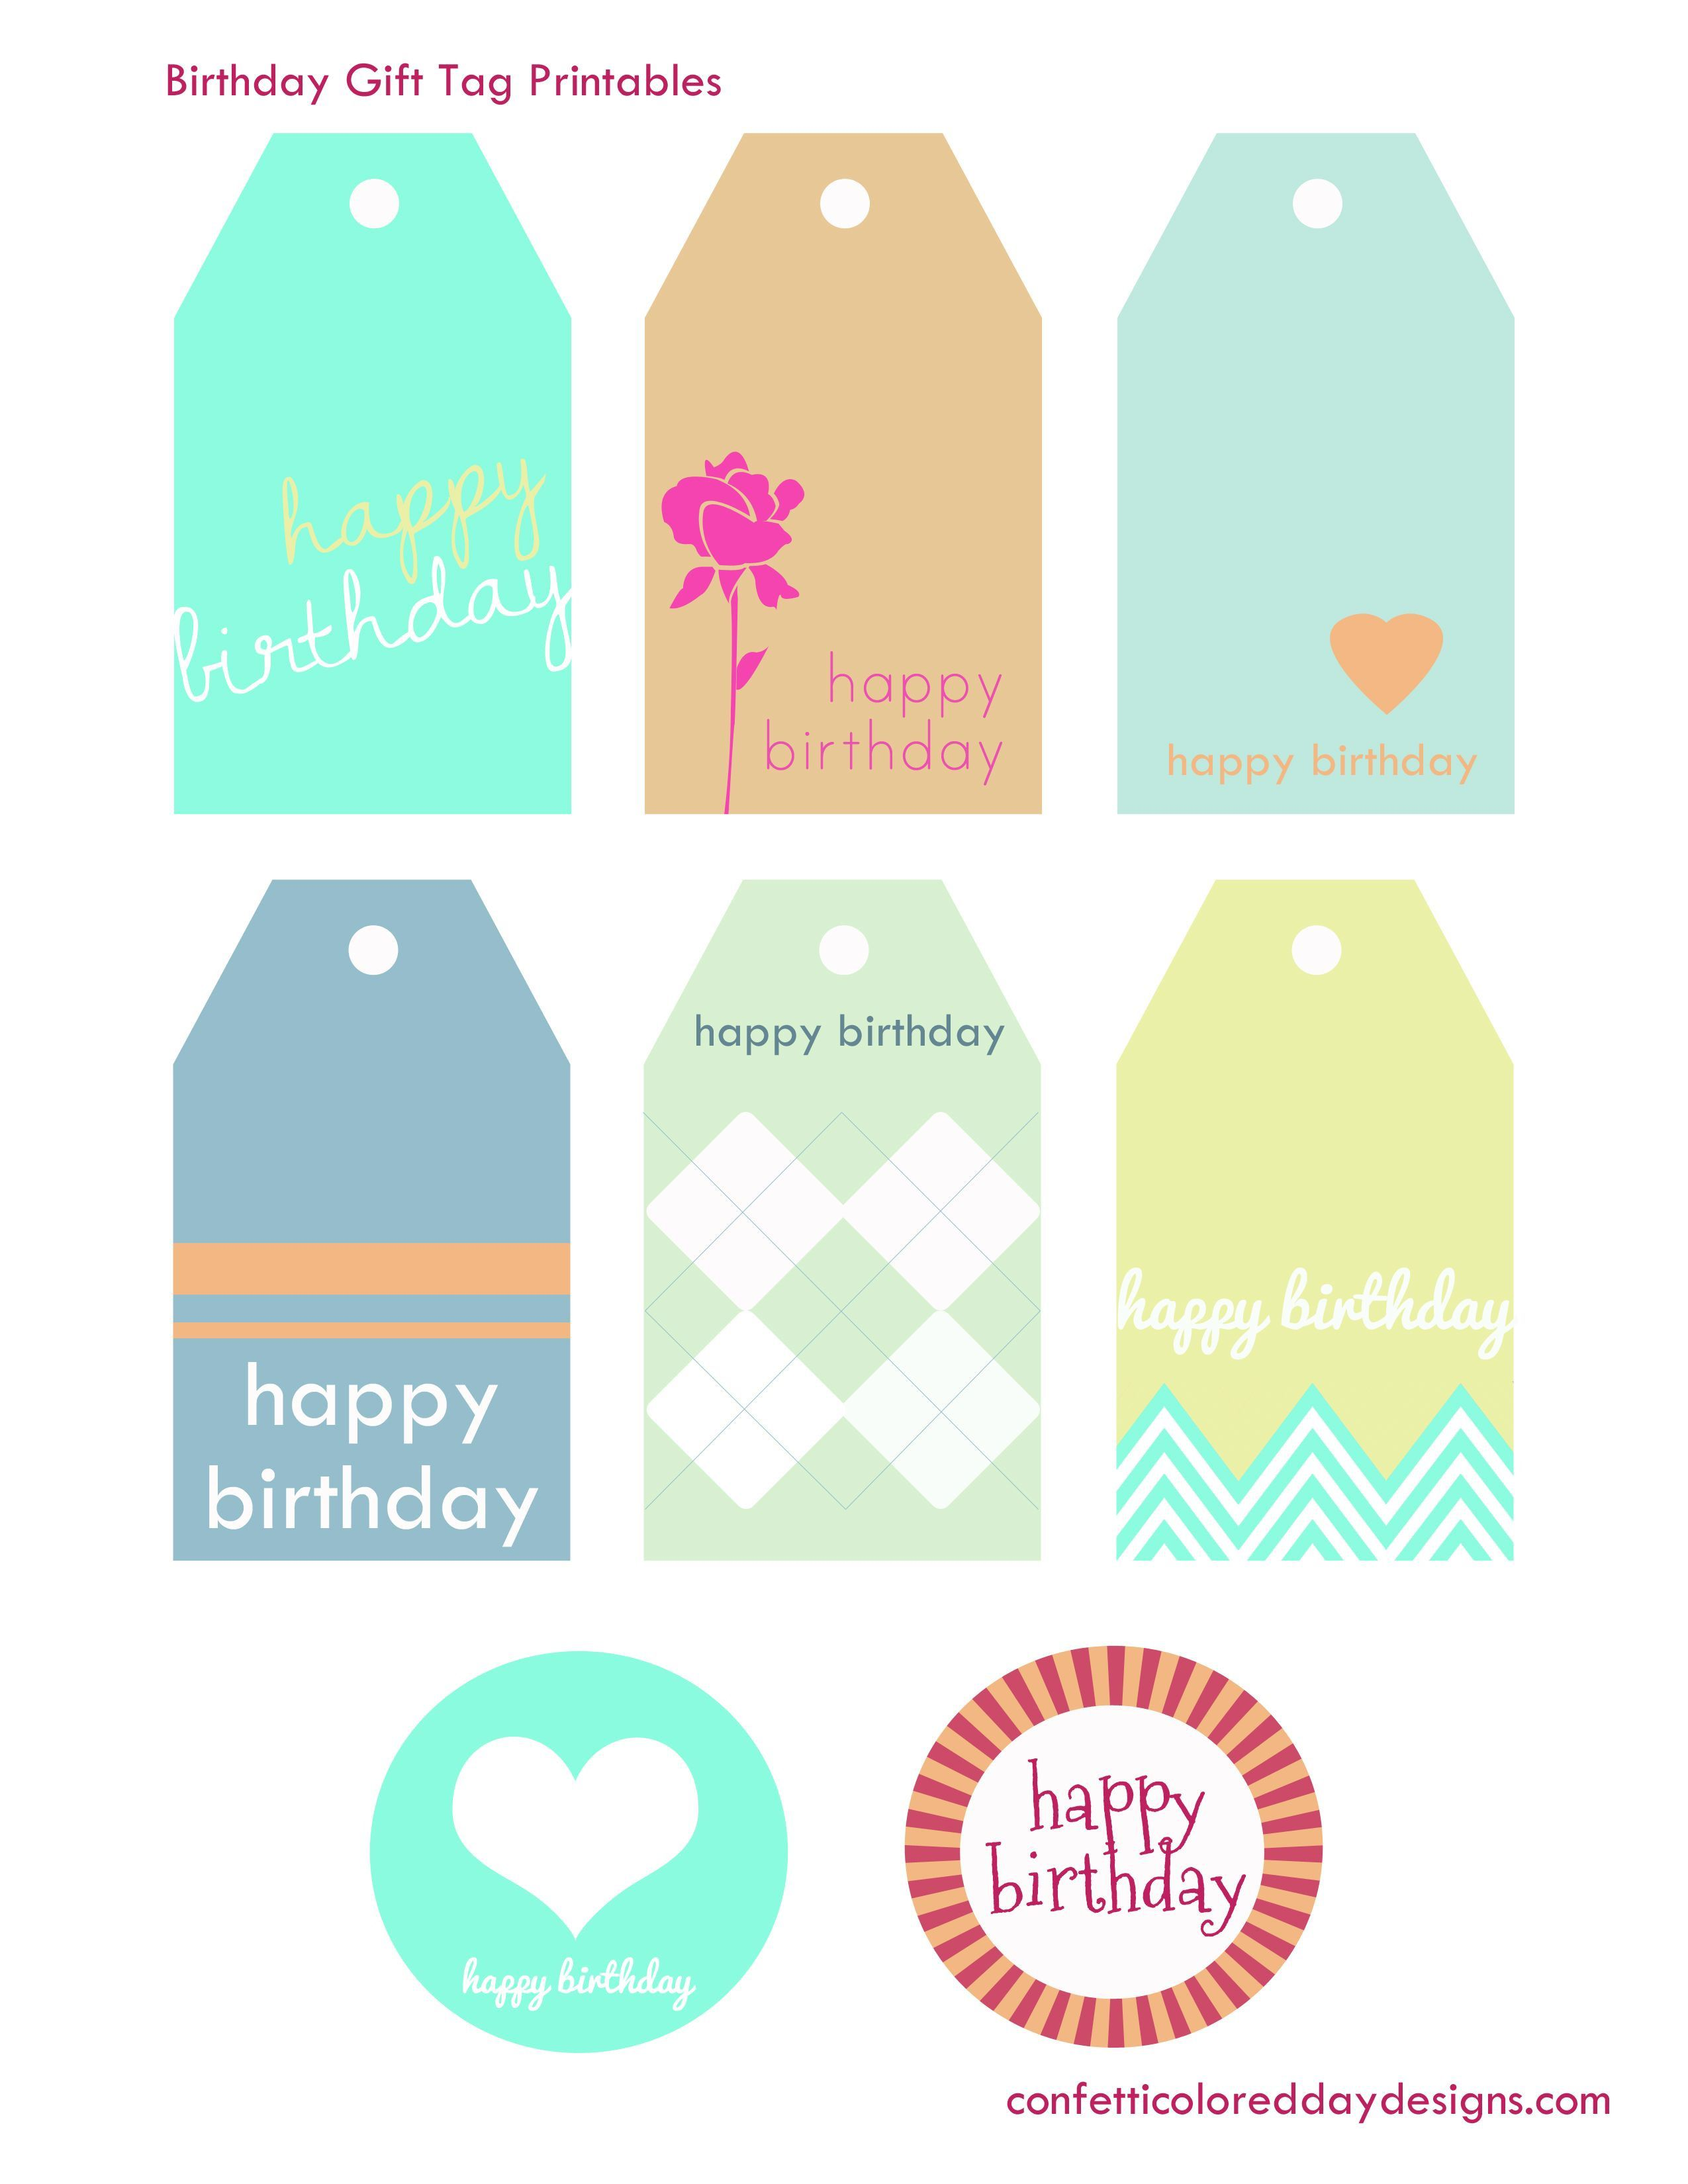 005 Fascinating Free Printable Thank You Gift Tag Template Photo  TemplatesFull